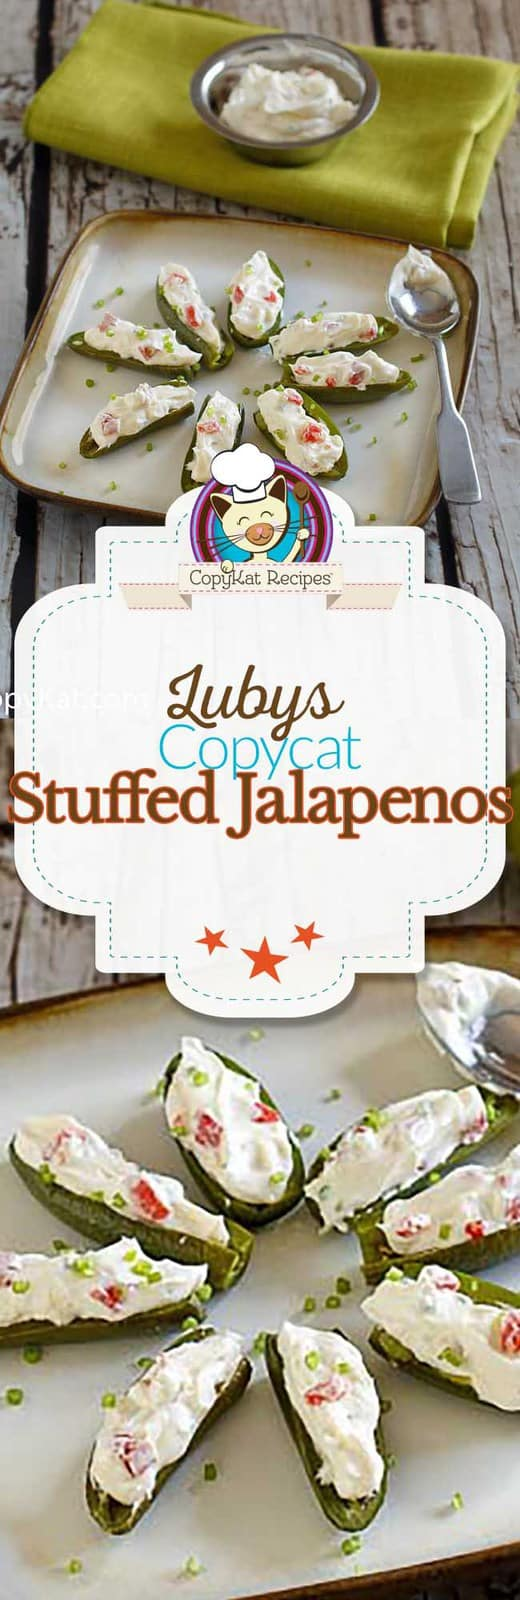 You can make these delicious Luby's stuffed jalapenos at home with this copycat recipe.   This is the perfect party appetizer.